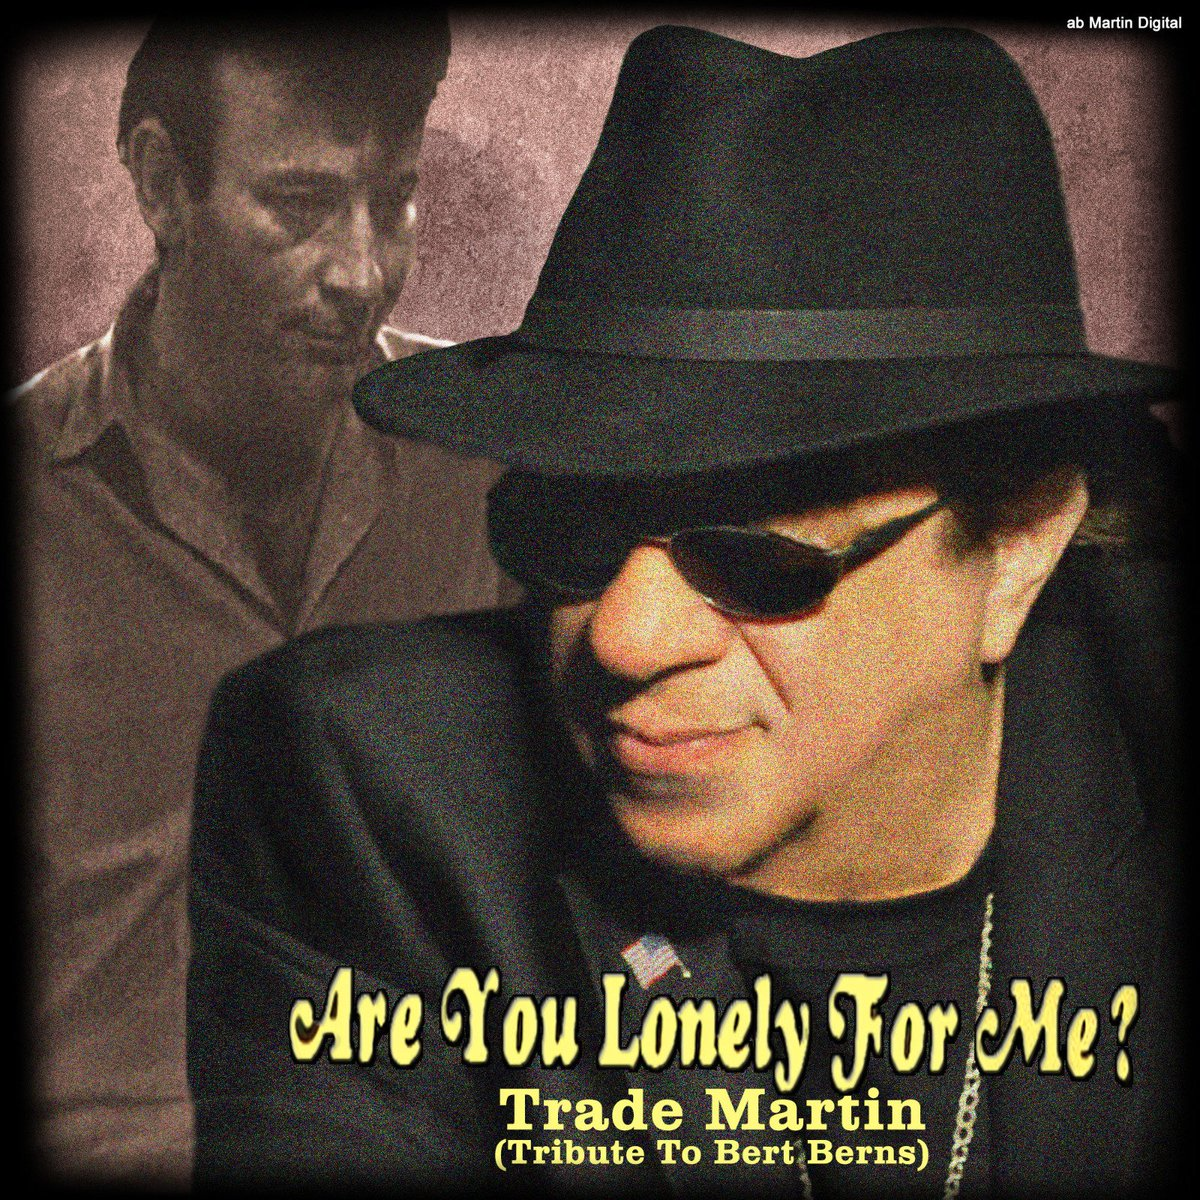 .Are You Lonely For Me The second half of the audio (Just Like Mine - Betty Harris) is an actual studio session with Bert Berns and Trade Martin in the '60s  https://www.youtube.com/watch?v=OG9rvnCLNishttps://www.youtube.com/watch?v=OG9rvnCLNis… #abMartindigital #TradeMartin #BertBerns #Amazon #iTunes #Pandora #Spotify #AppleMusic